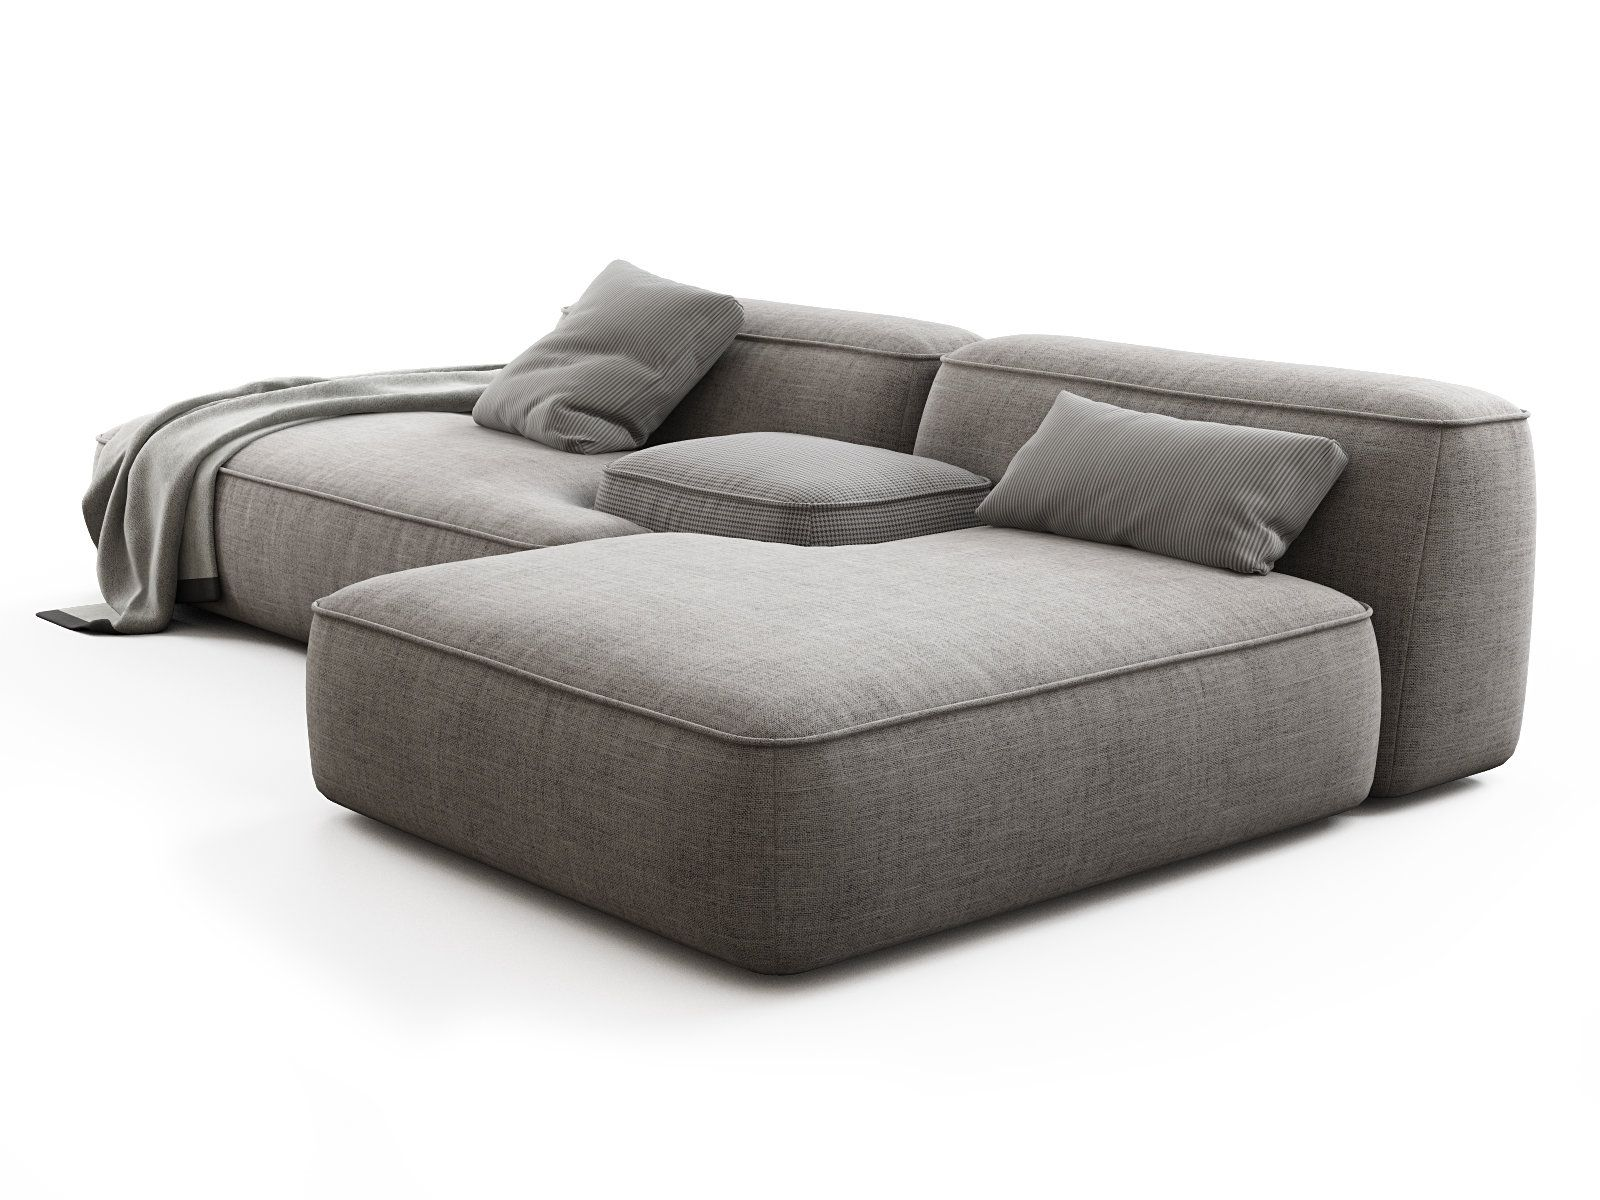 Cloud Sofa 01 3d Model By Design Connected Modular Sectional